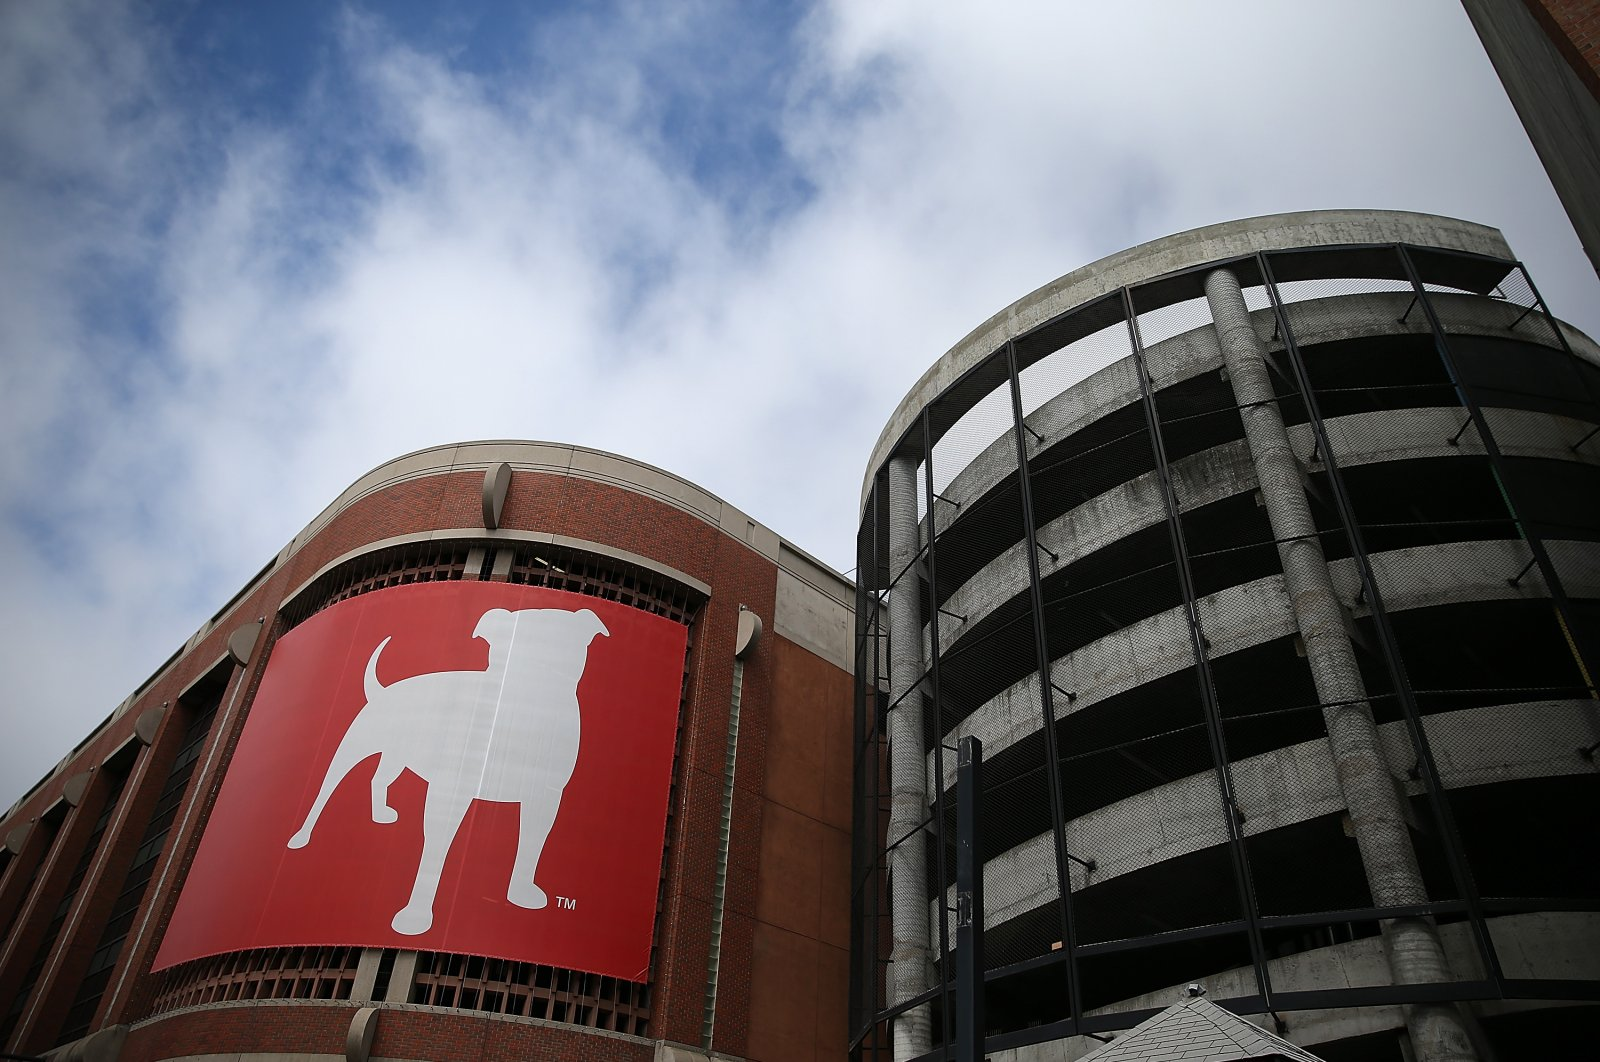 This file photo shows the Zynga logo at its headquarters in San Francisco, California. (AFP Photo)